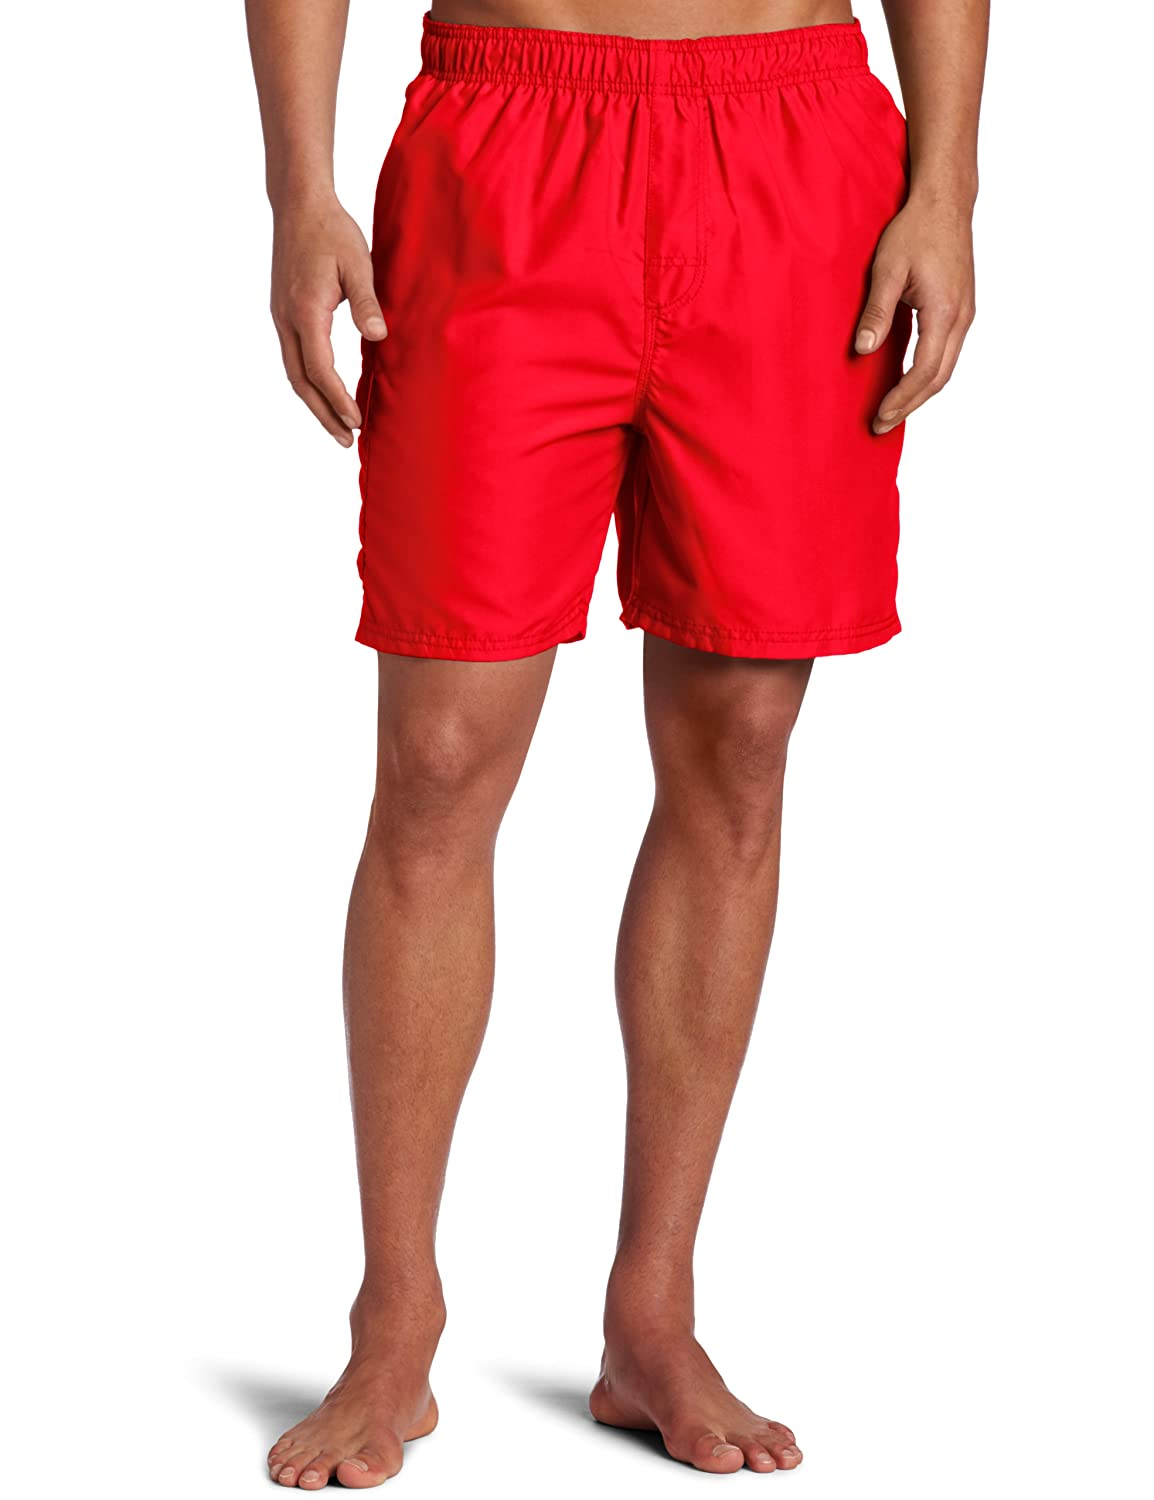 Kanu Surf Men's Havana Elastic Waist Solid Swim Trunk Kanu Surf Men' s Swimwear 7067